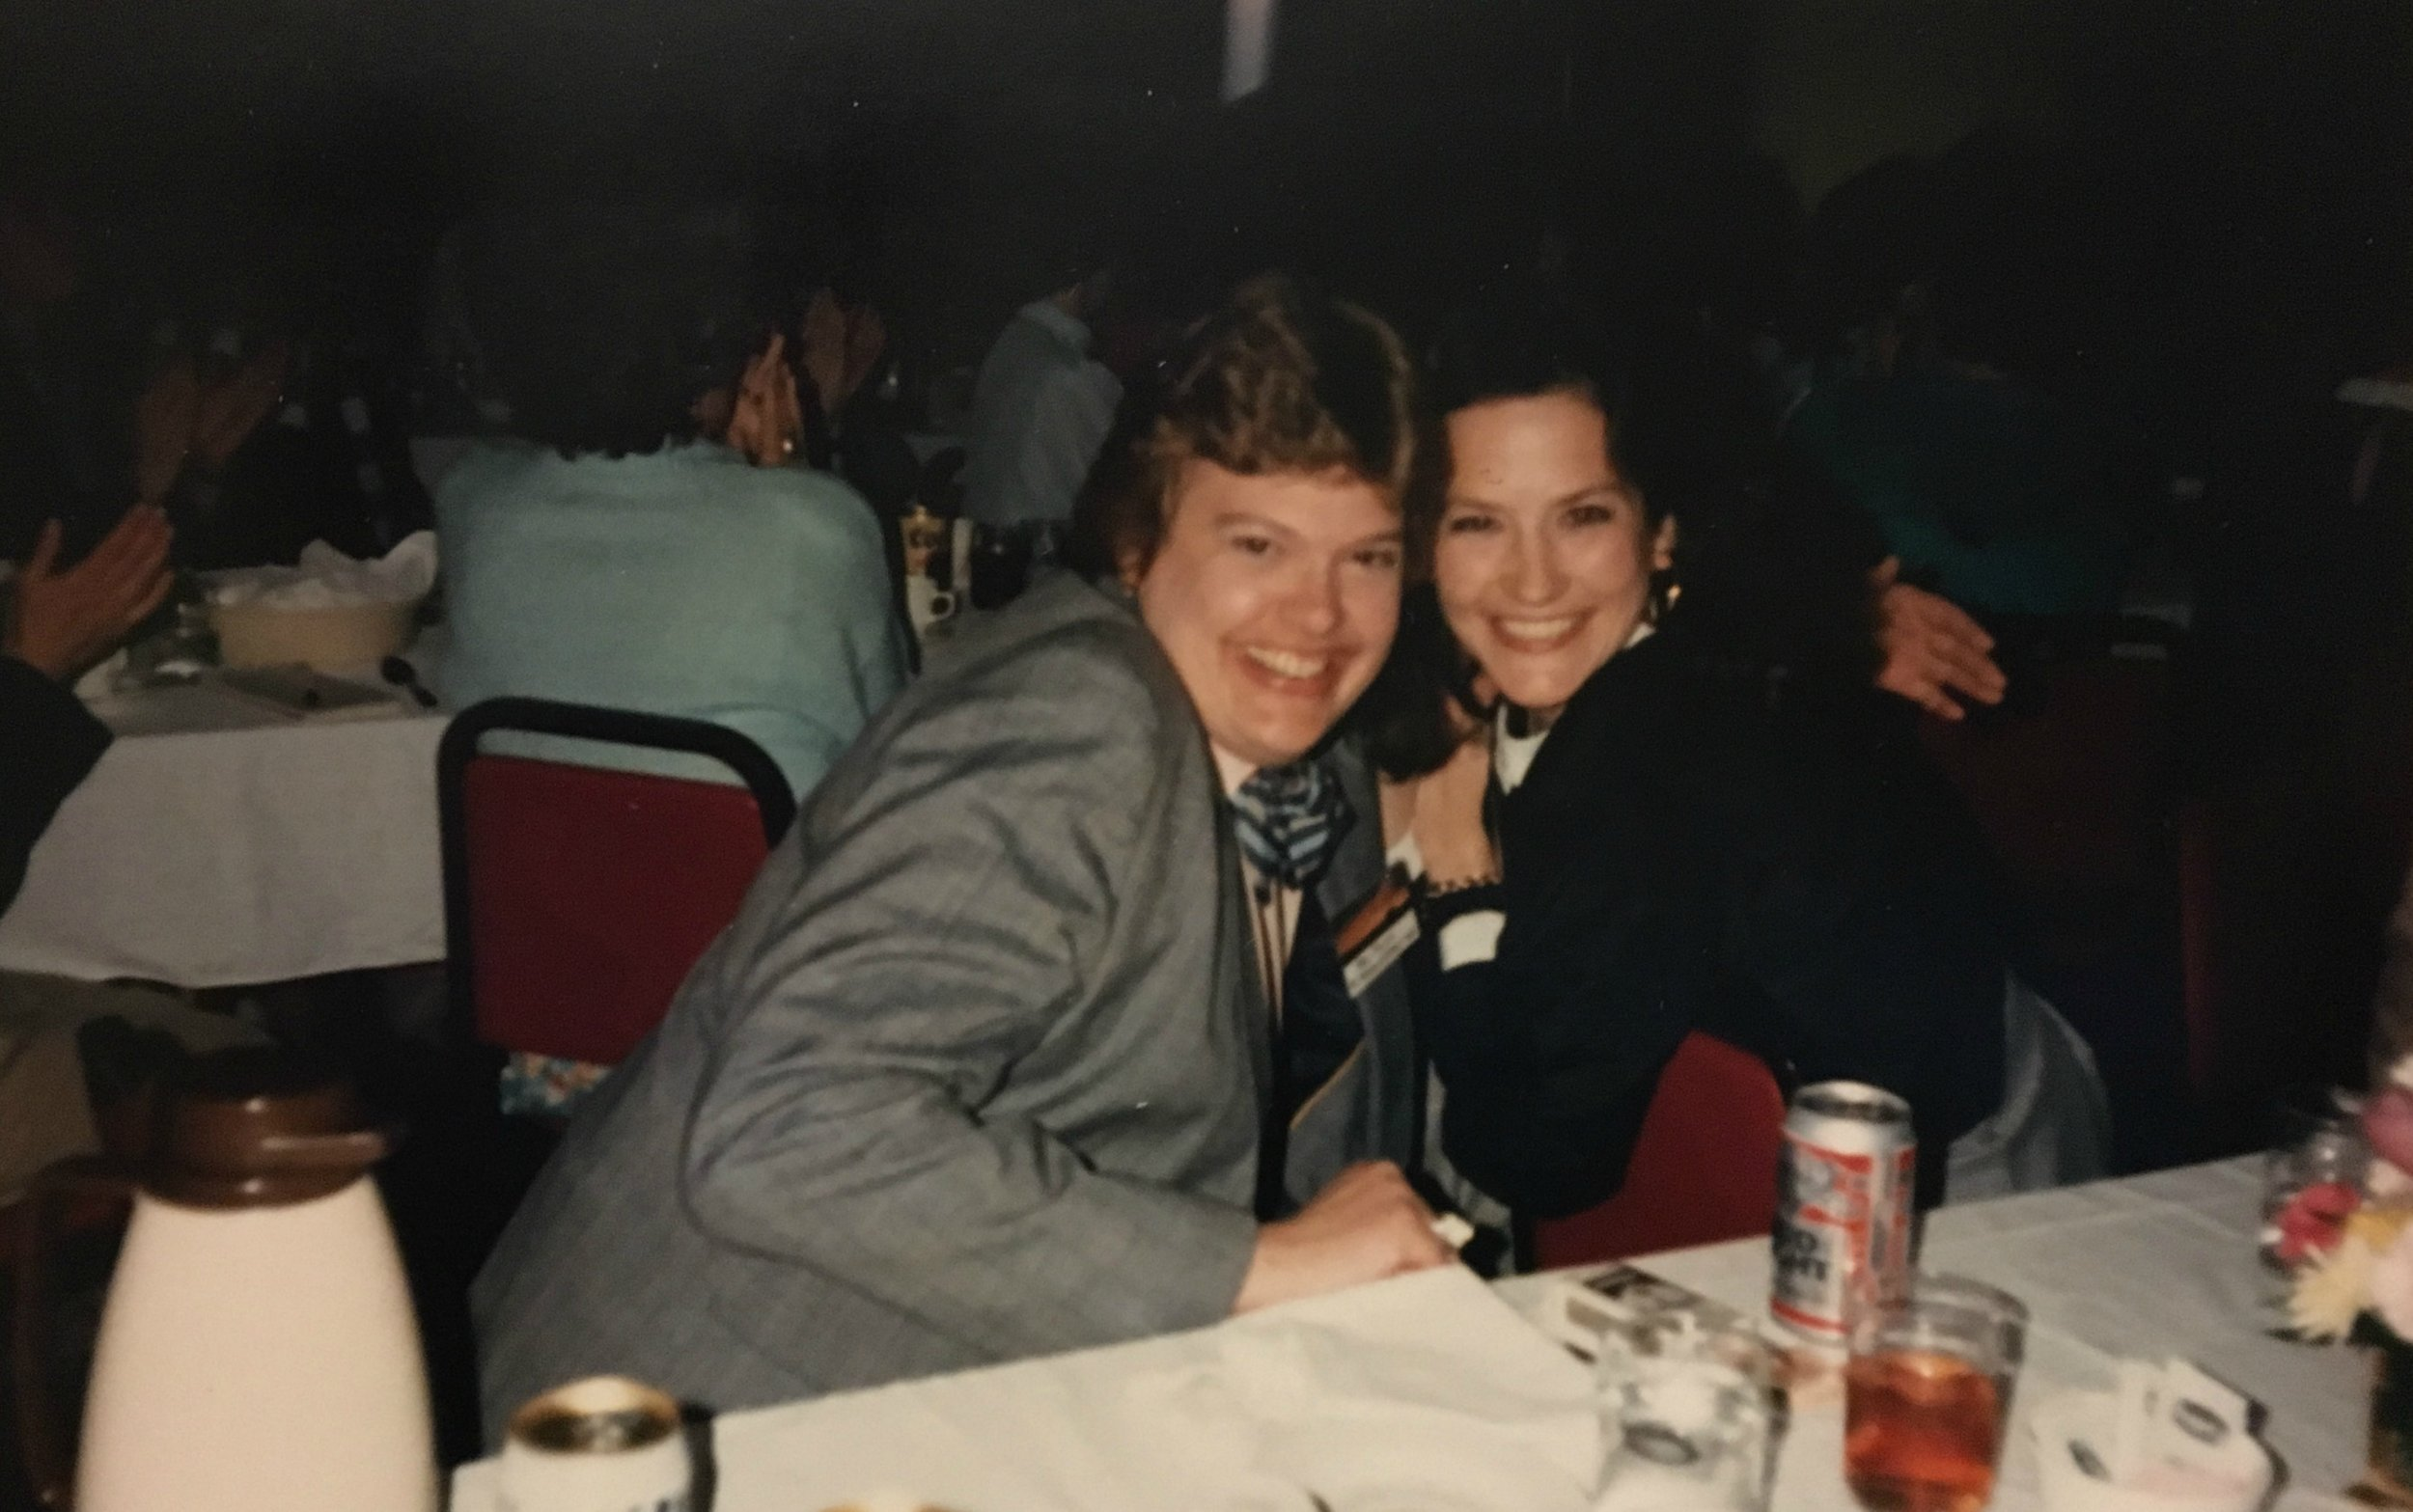 Vicki Miller and I at a Nebraska Press Women event in the late 1980s in Grand Island, Neb., as I remember it. Or maybe it was Hastings. Somewhere along the Interstate 80 corridor. Yes, that's a Bud Light in front of me. And no, we just didn't know how to have any fun. (Kidding.)